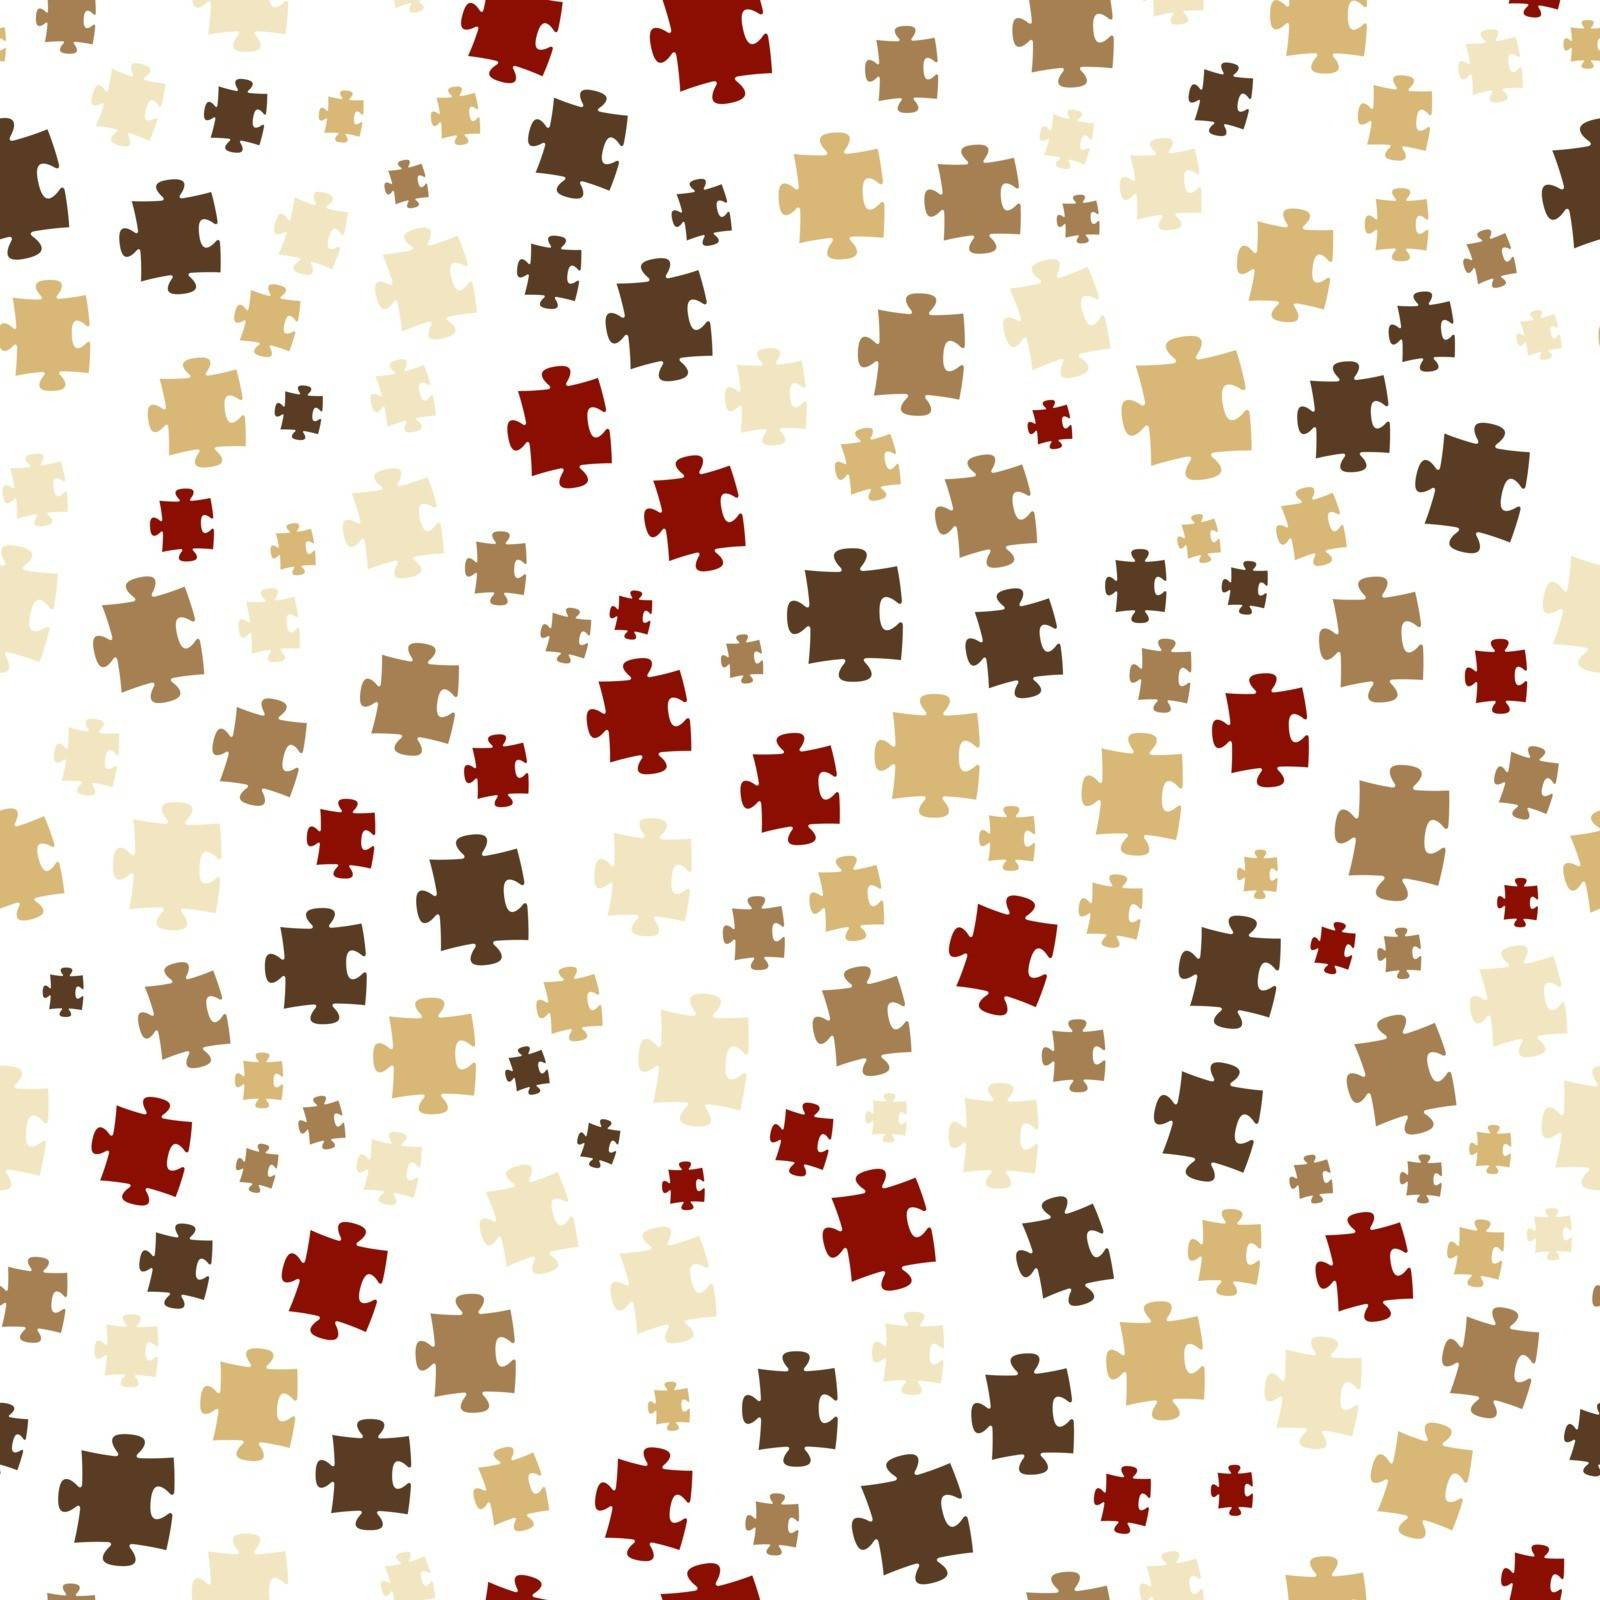 The puzzle background made out of brown puzzle pieces